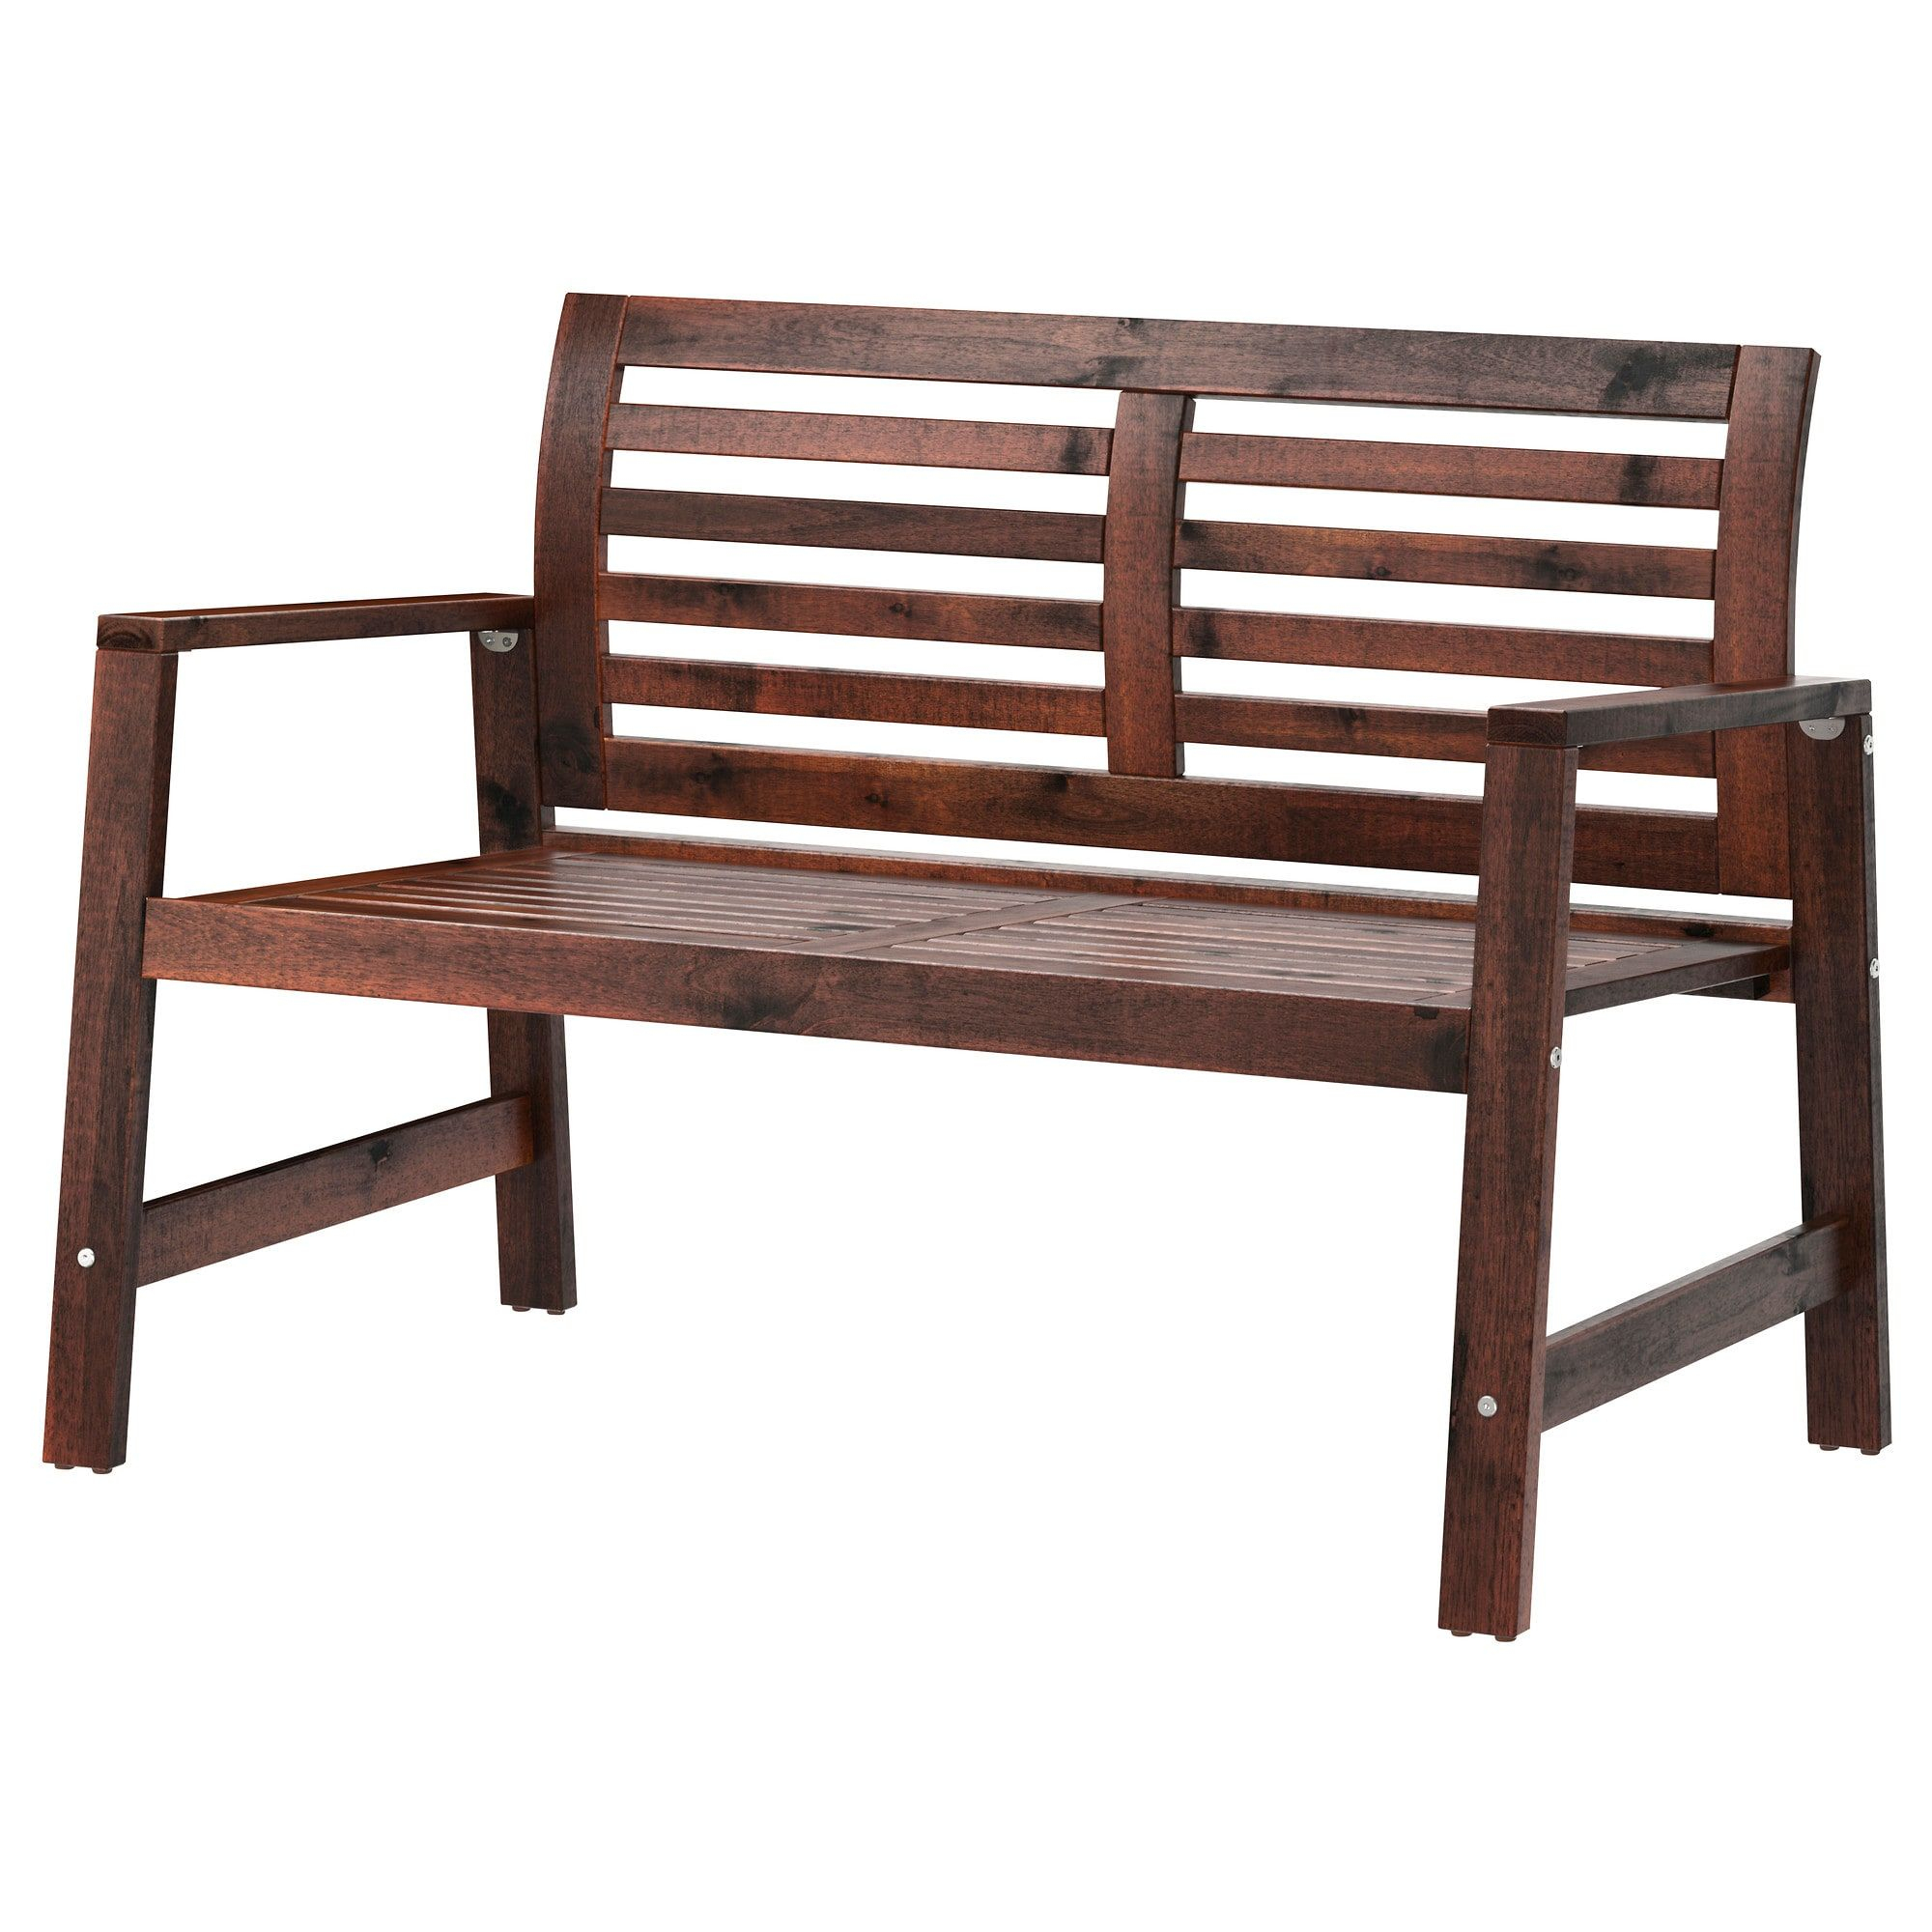 Äpplarö Bench With Backrest, Outdoor - Brown Stained Brown ... dedans Banc De Jardin Ikea